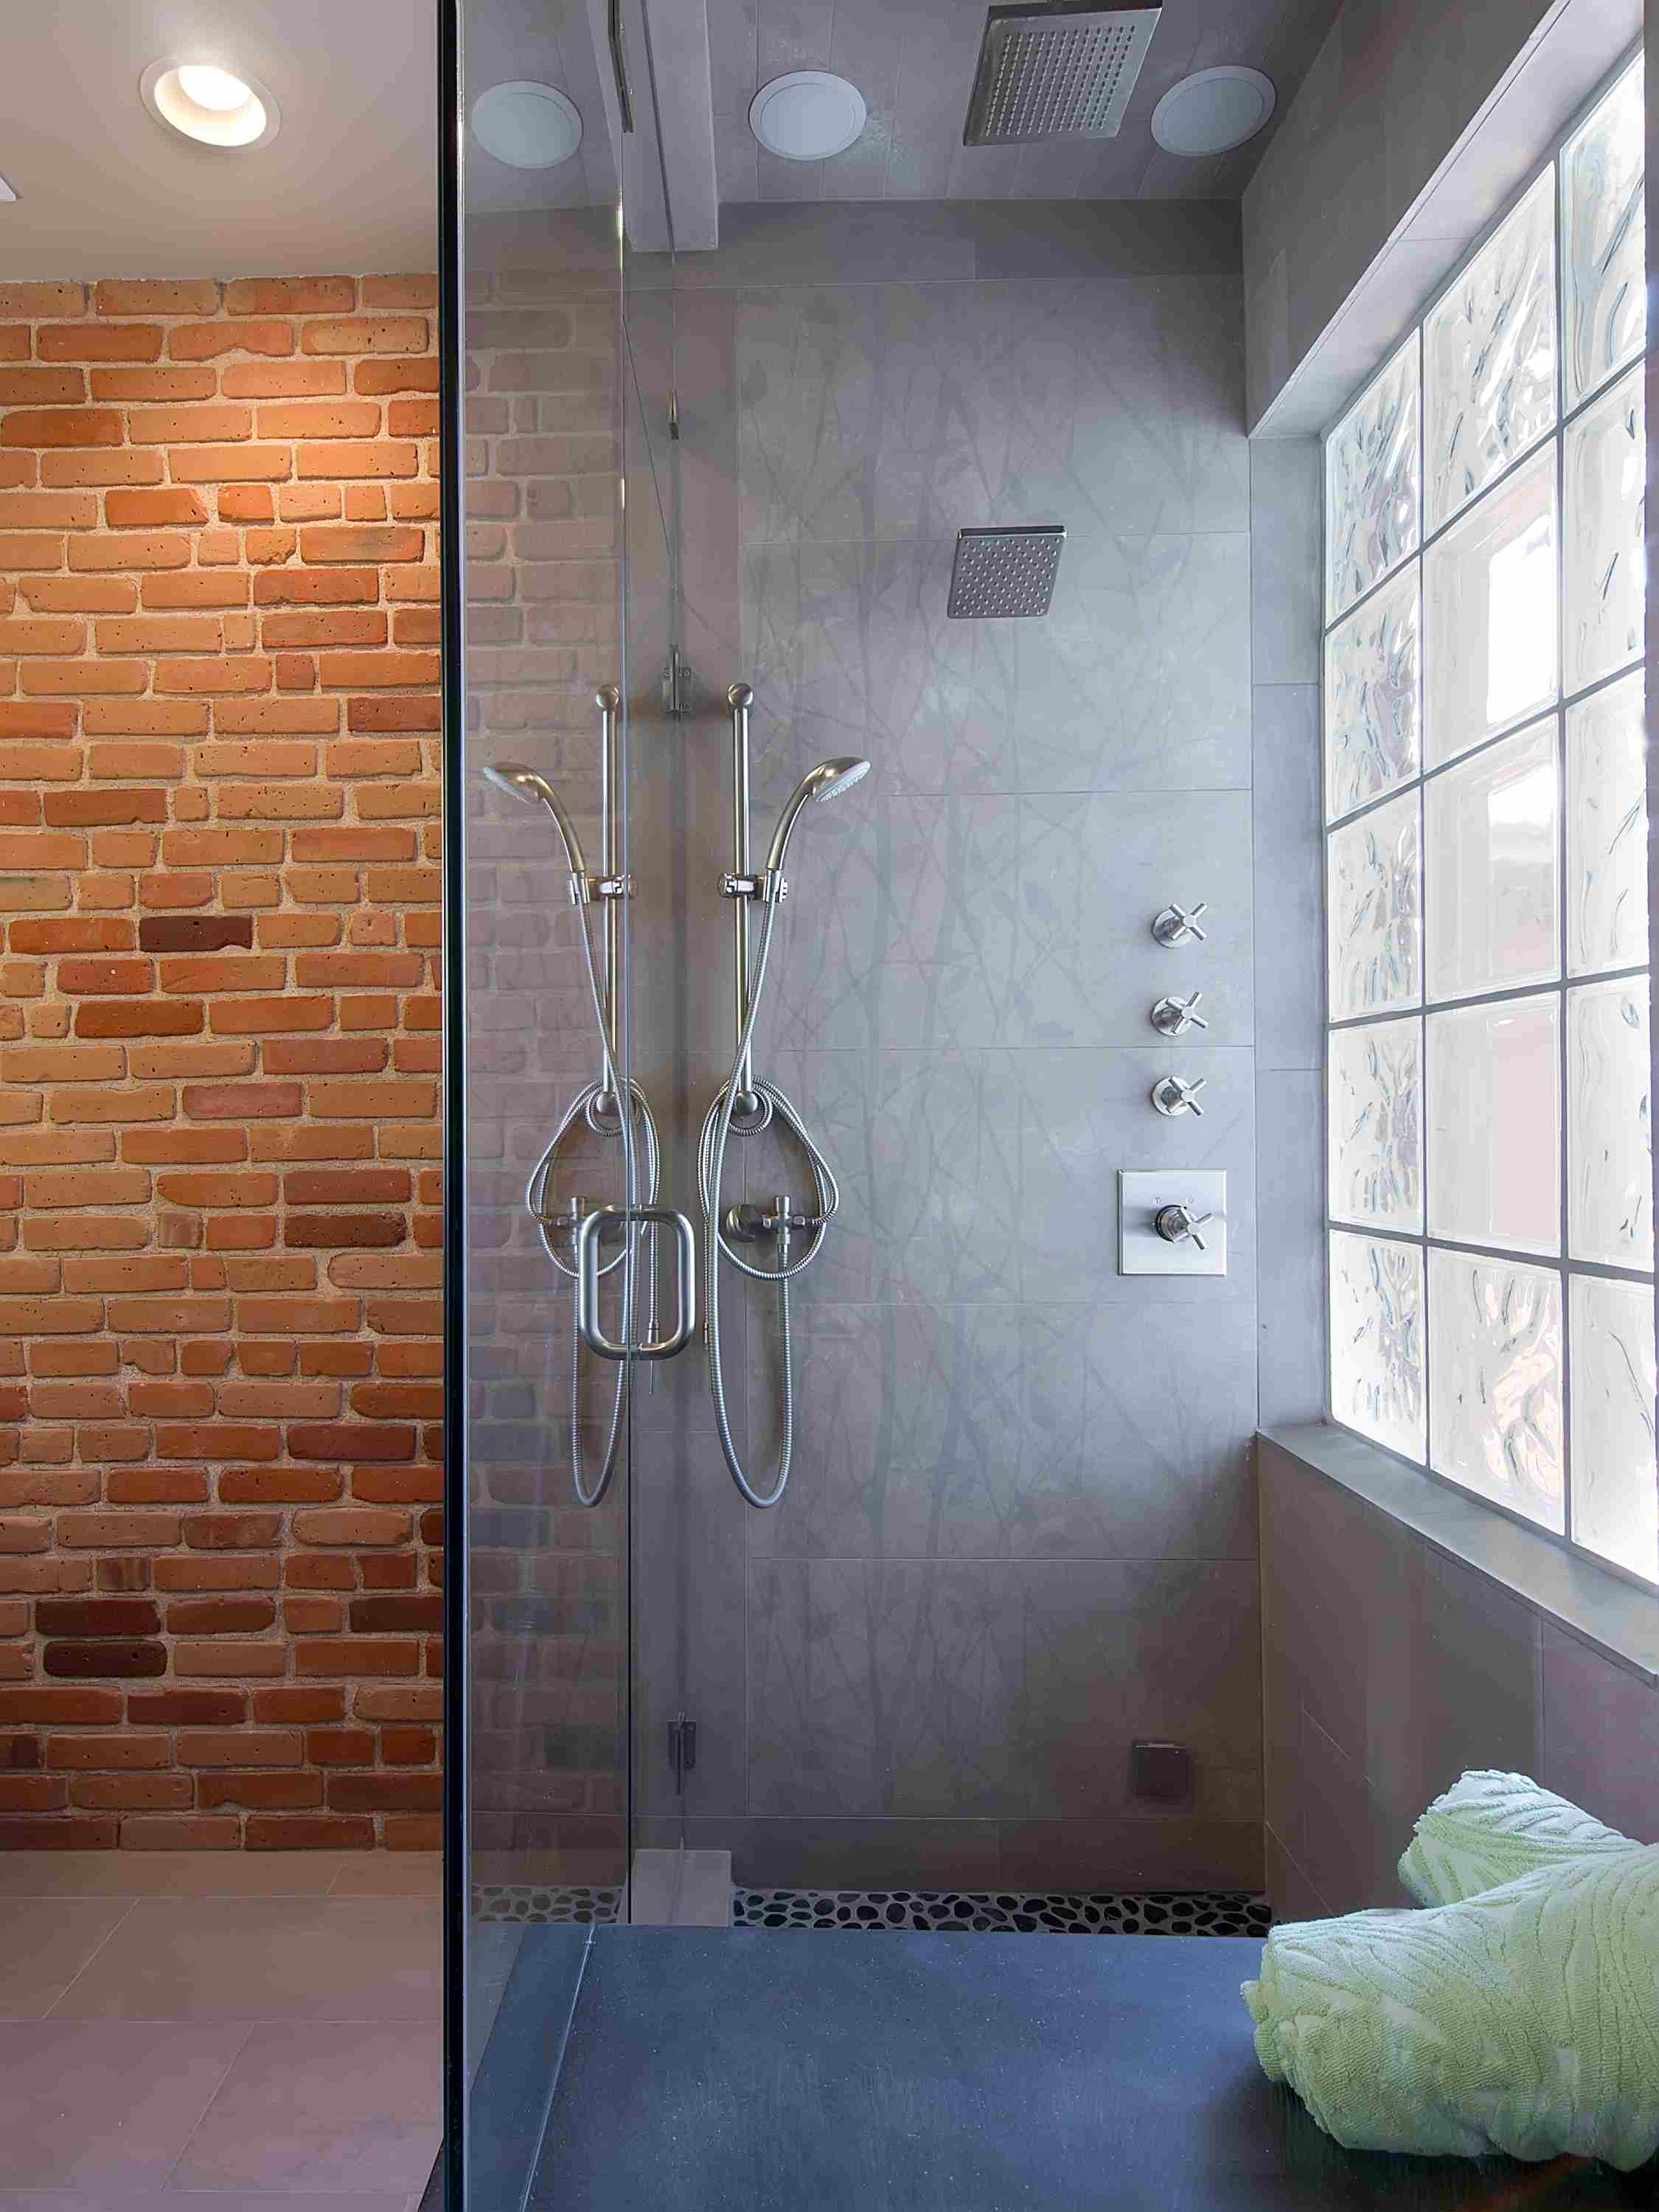 exposed brick and concrete — sanctuary kitchen and bath desi.jpg